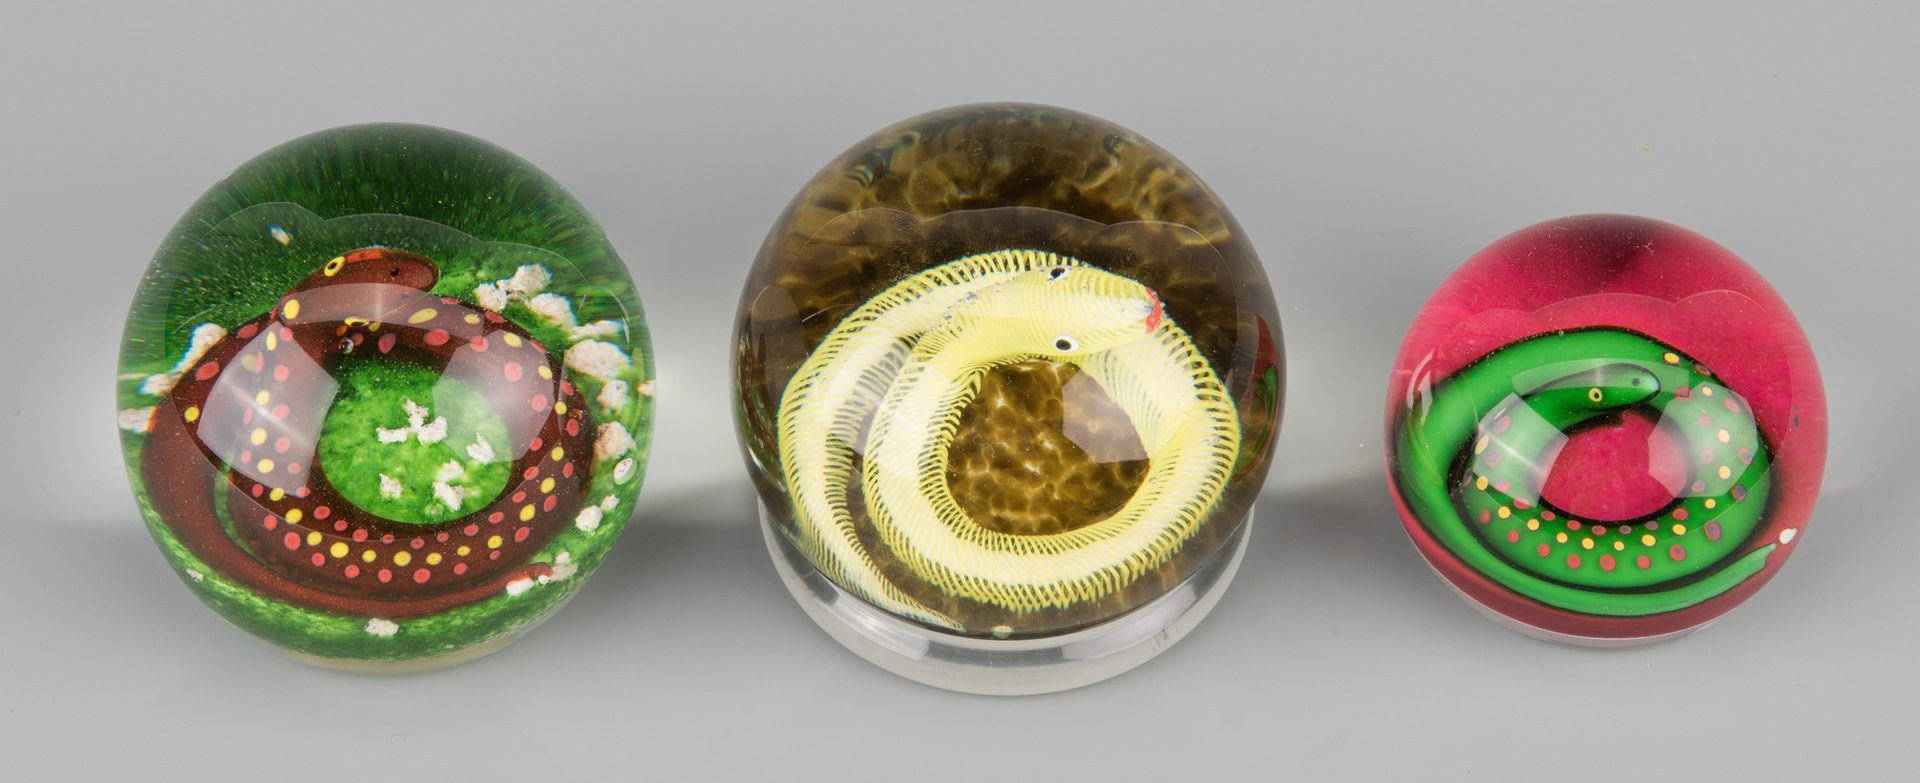 Lot 682: 3 Paul Ysart Paperweights, Coiled Snakes